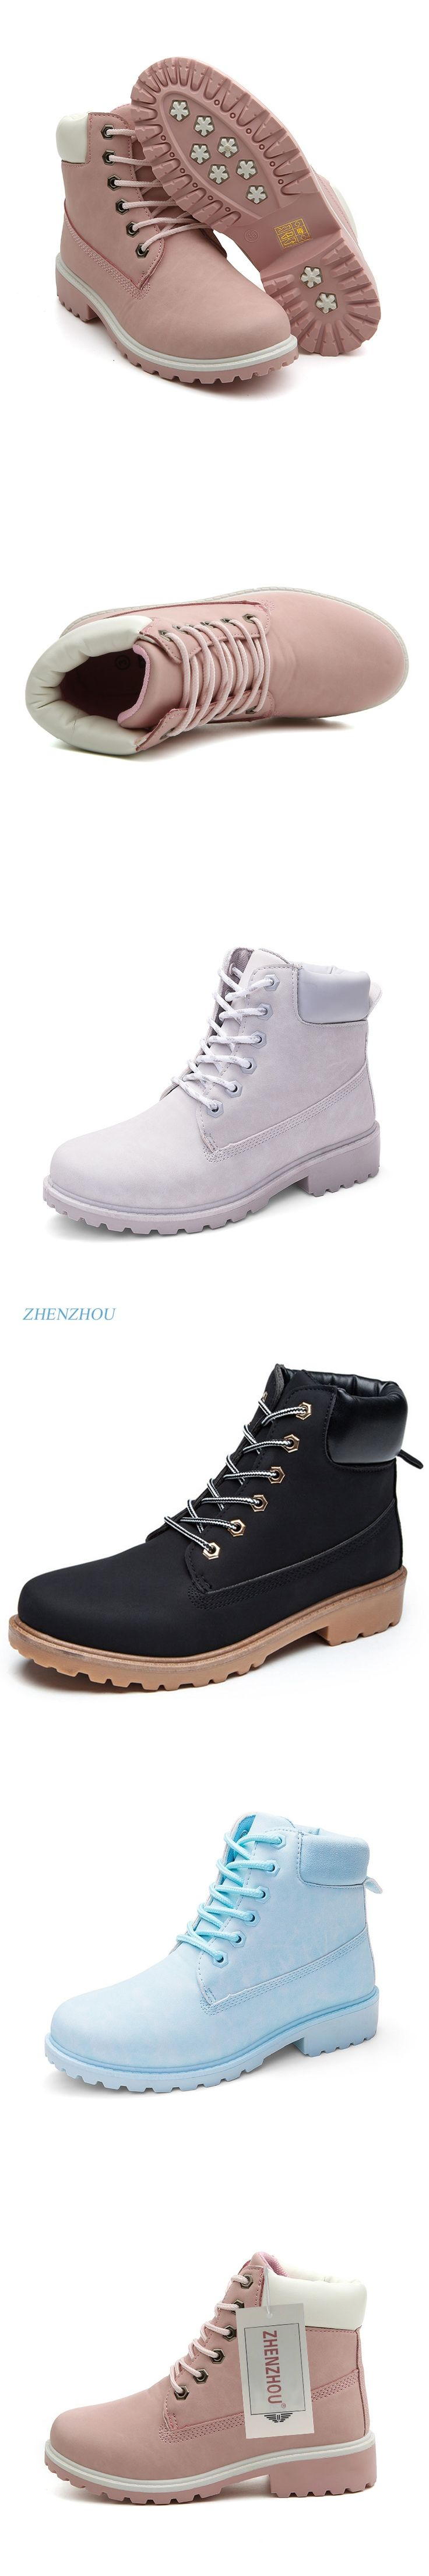 zhenzhou Autumn and winter Women's shoes Work boots Flat top shoes Female code Casual Martin boots